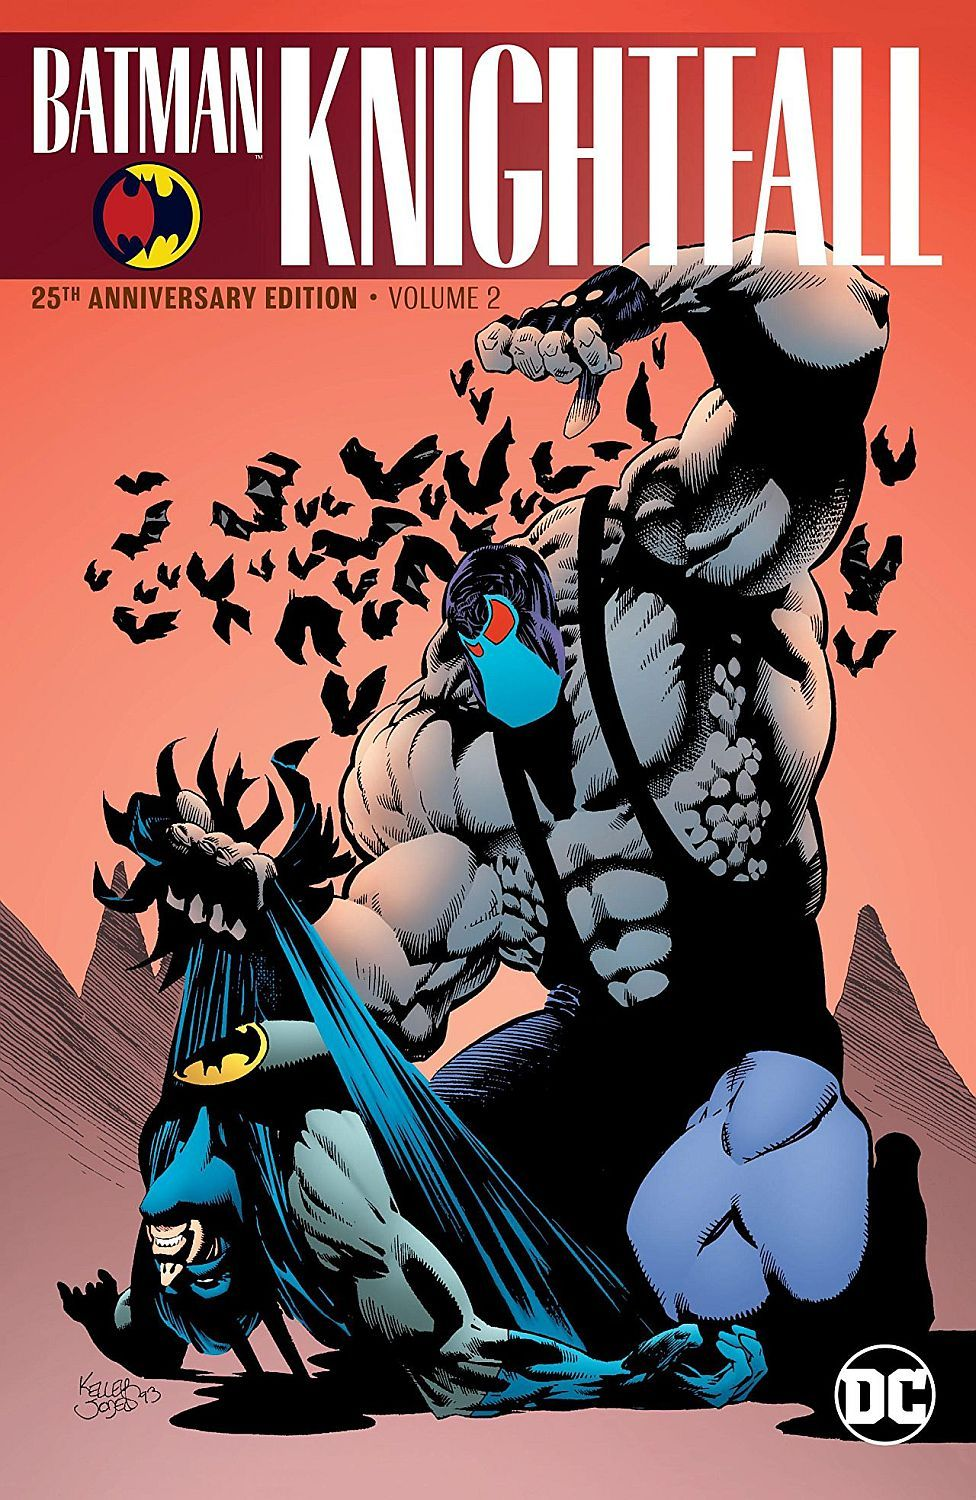 Batman: Knightfall Vol. 2 (25th Anniversary Edition) - 1